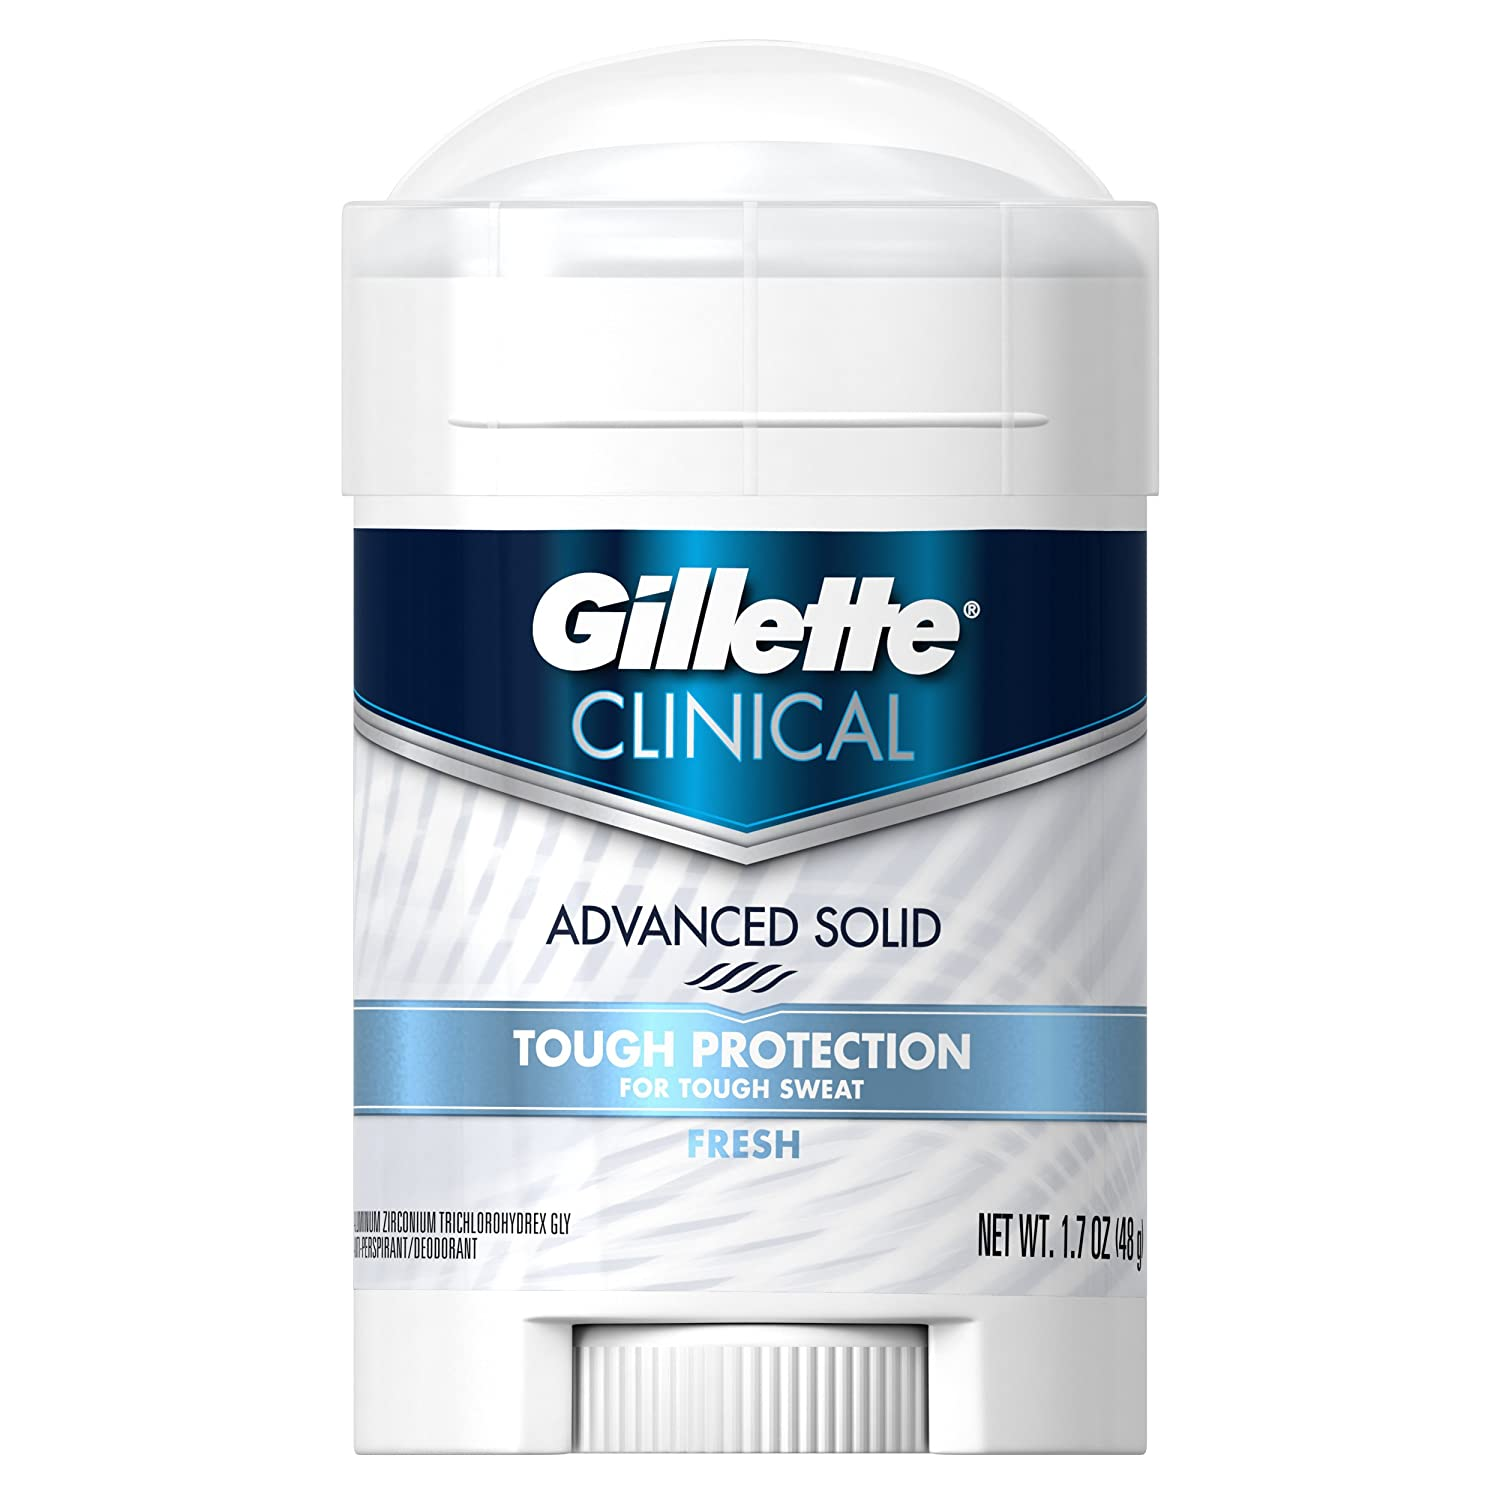 Gillette Clinical Strength All Day Fresh Anti-Perspirant / Deodorant 1.7 Oz